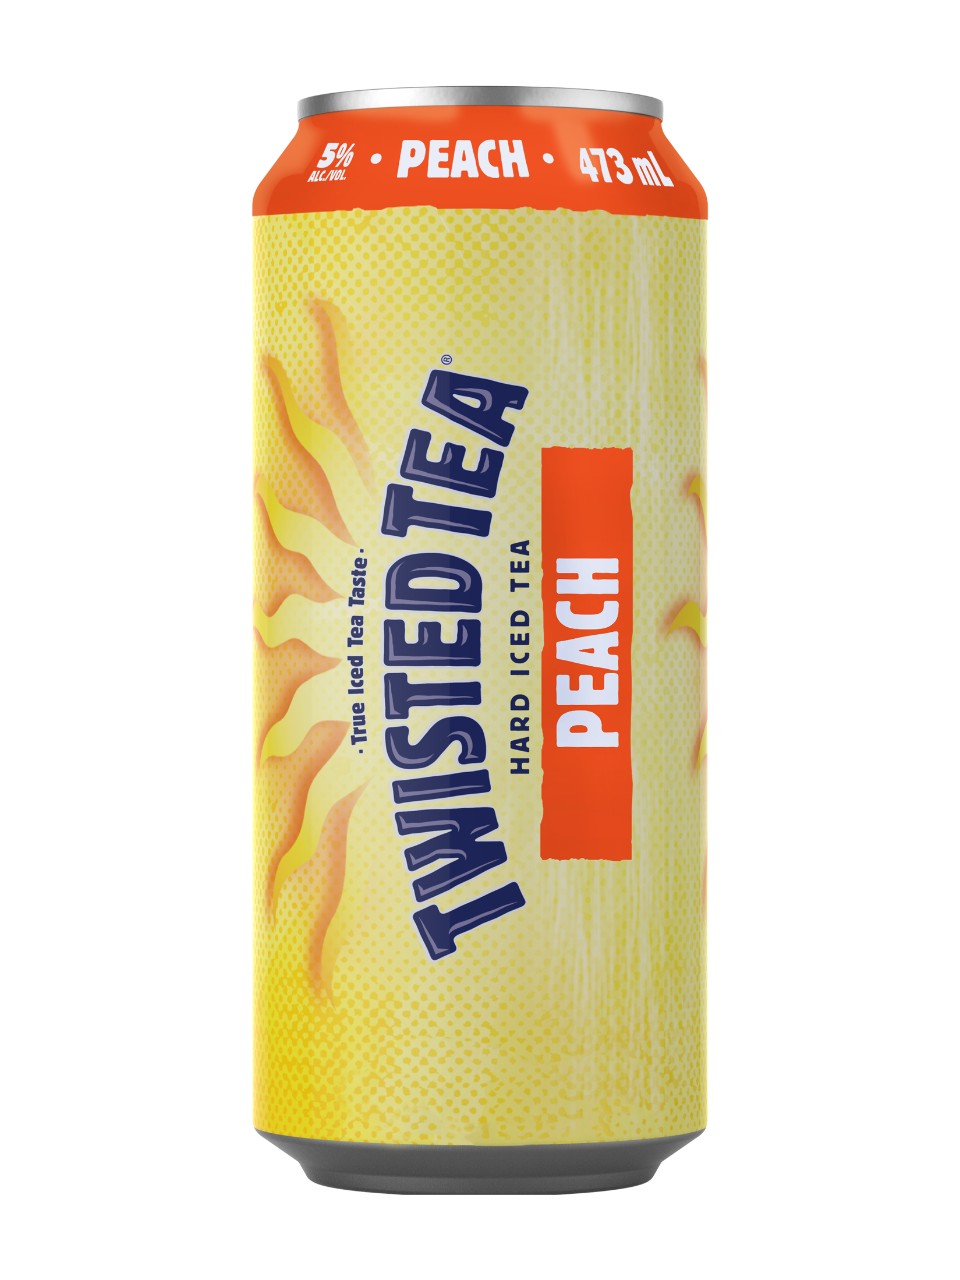 Twisted Tea Peach from LCBO